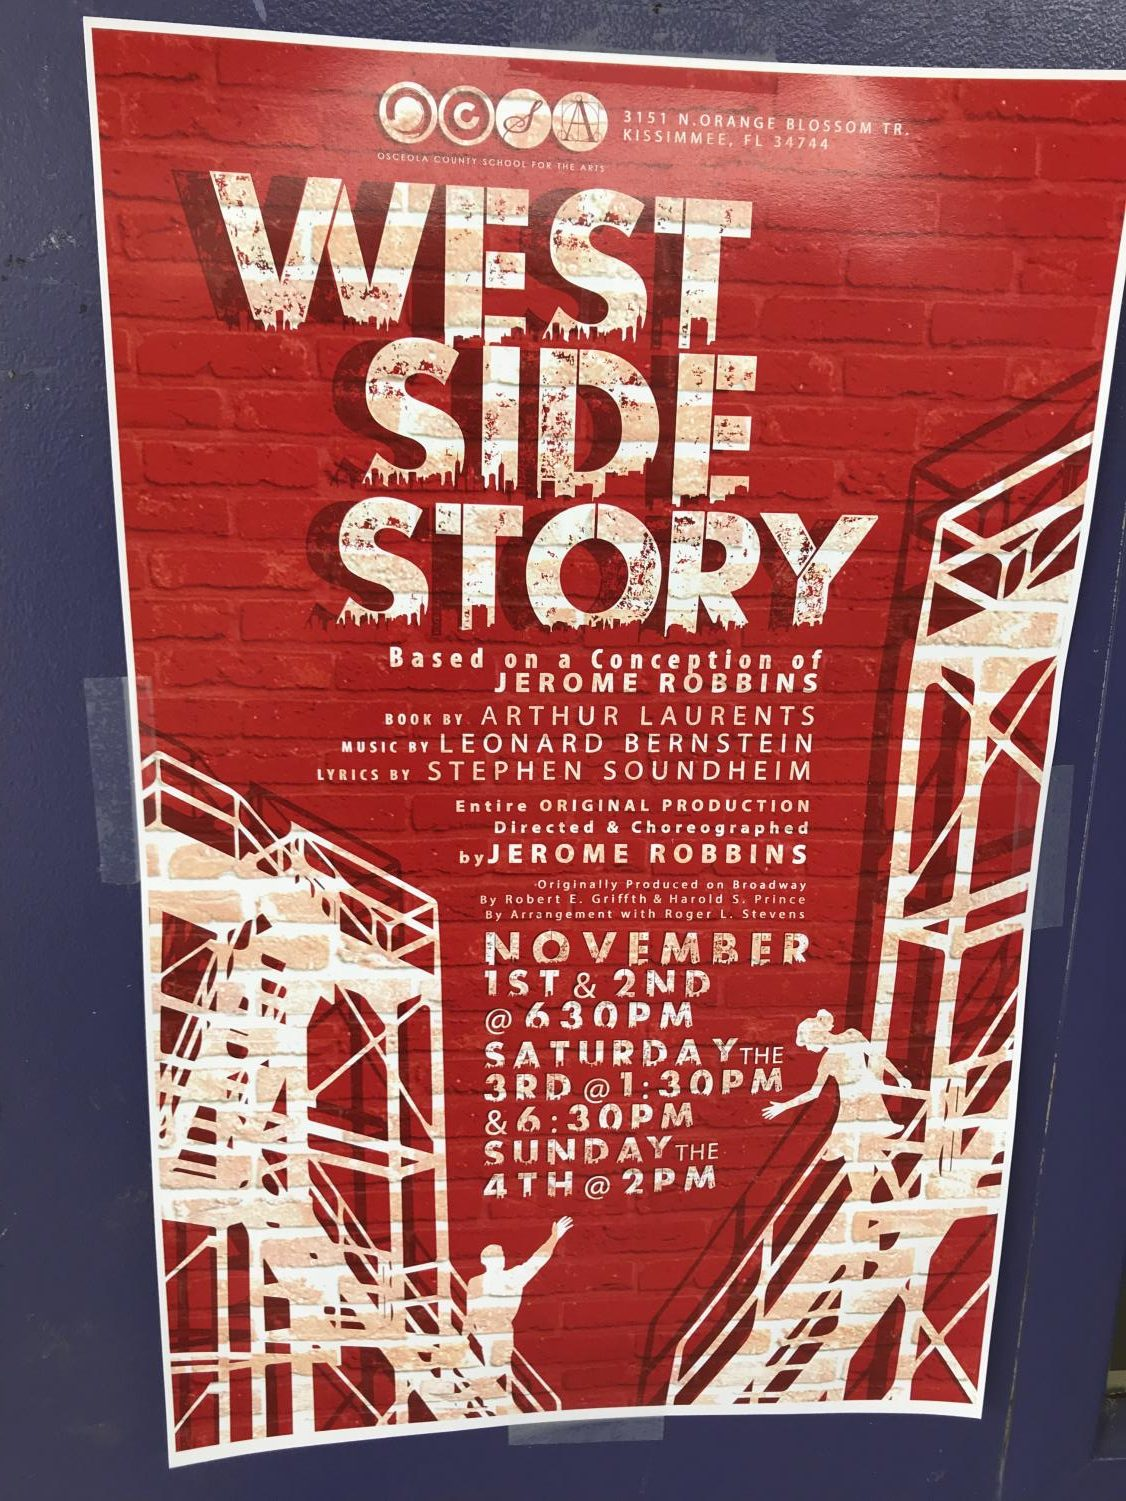 West Side Story performances are being held.